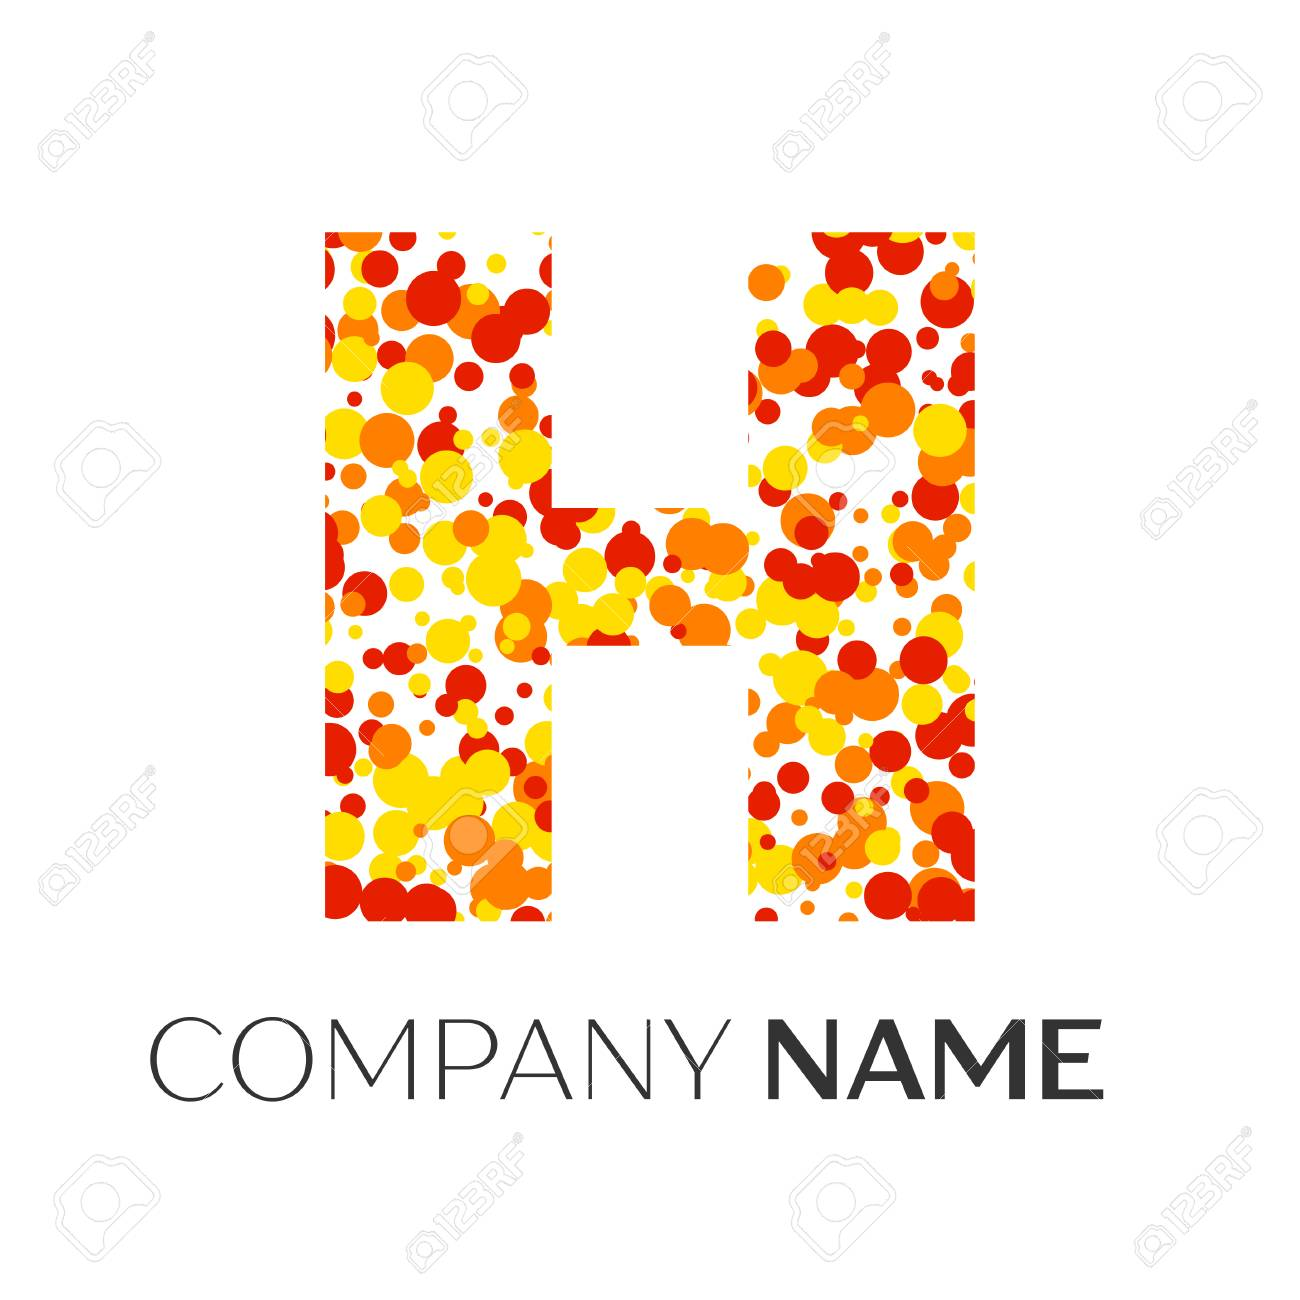 Letter H logo with orange, yellow, red particles and bubbles